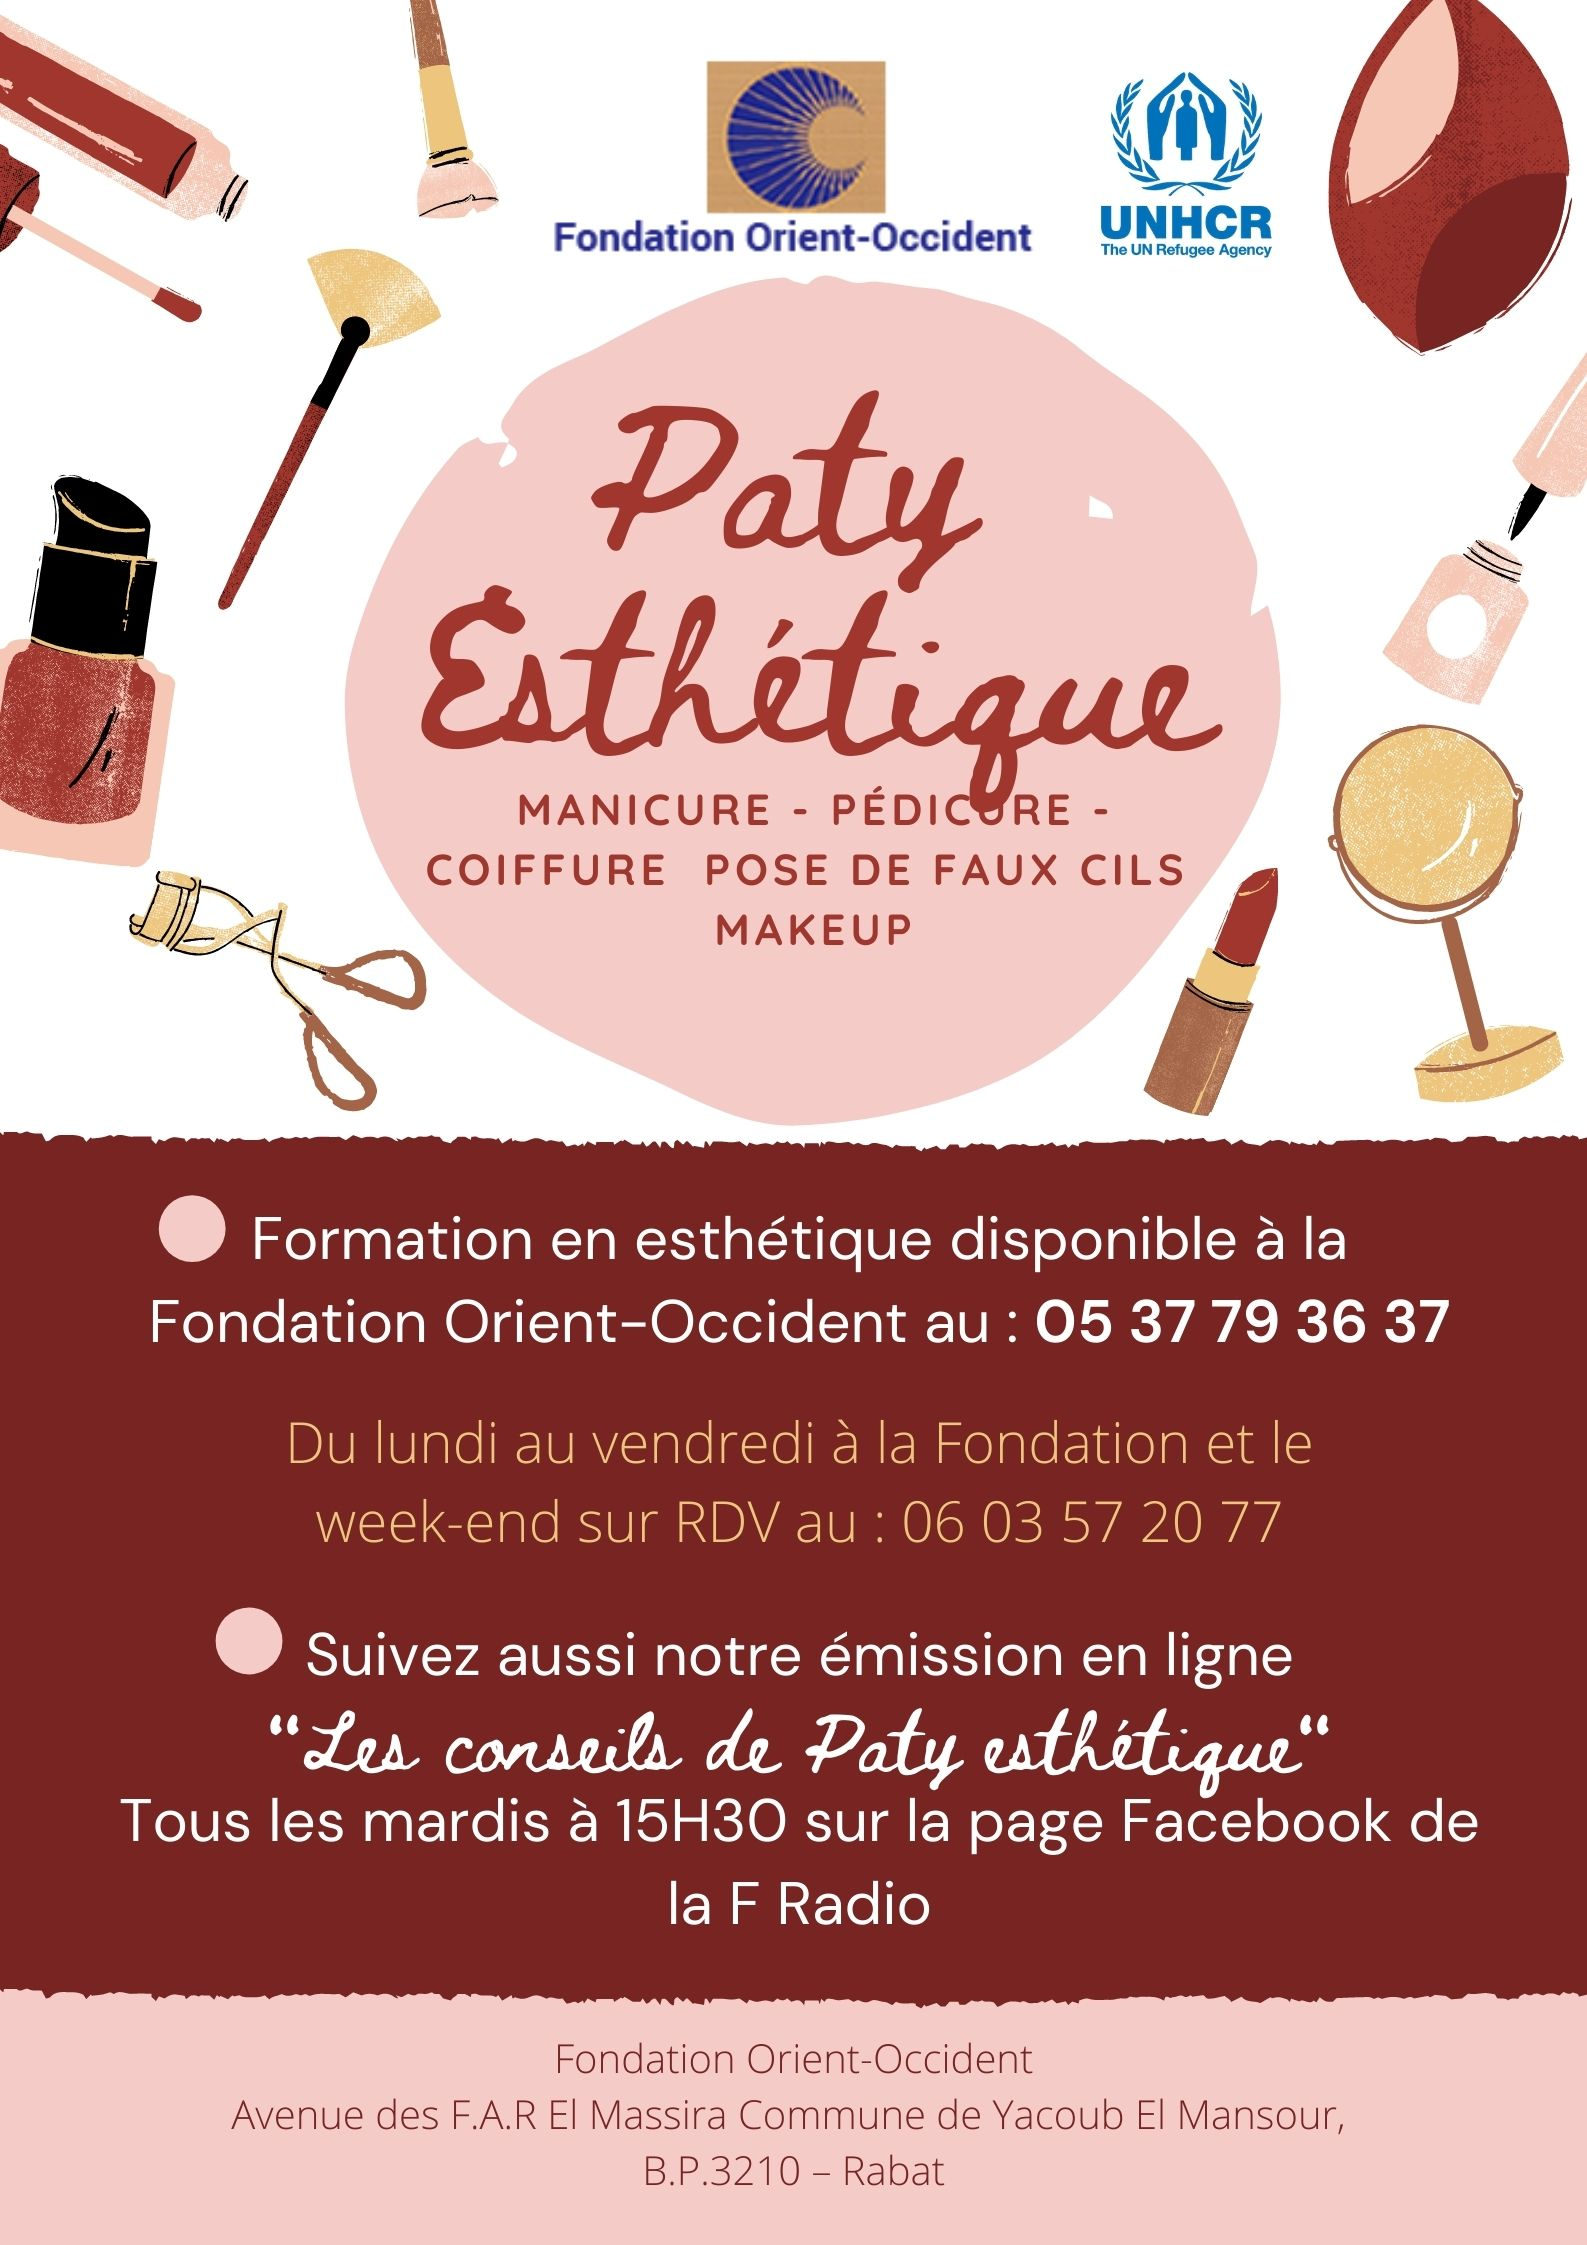 Aesthetics training available at the Fondation Orient-Occident